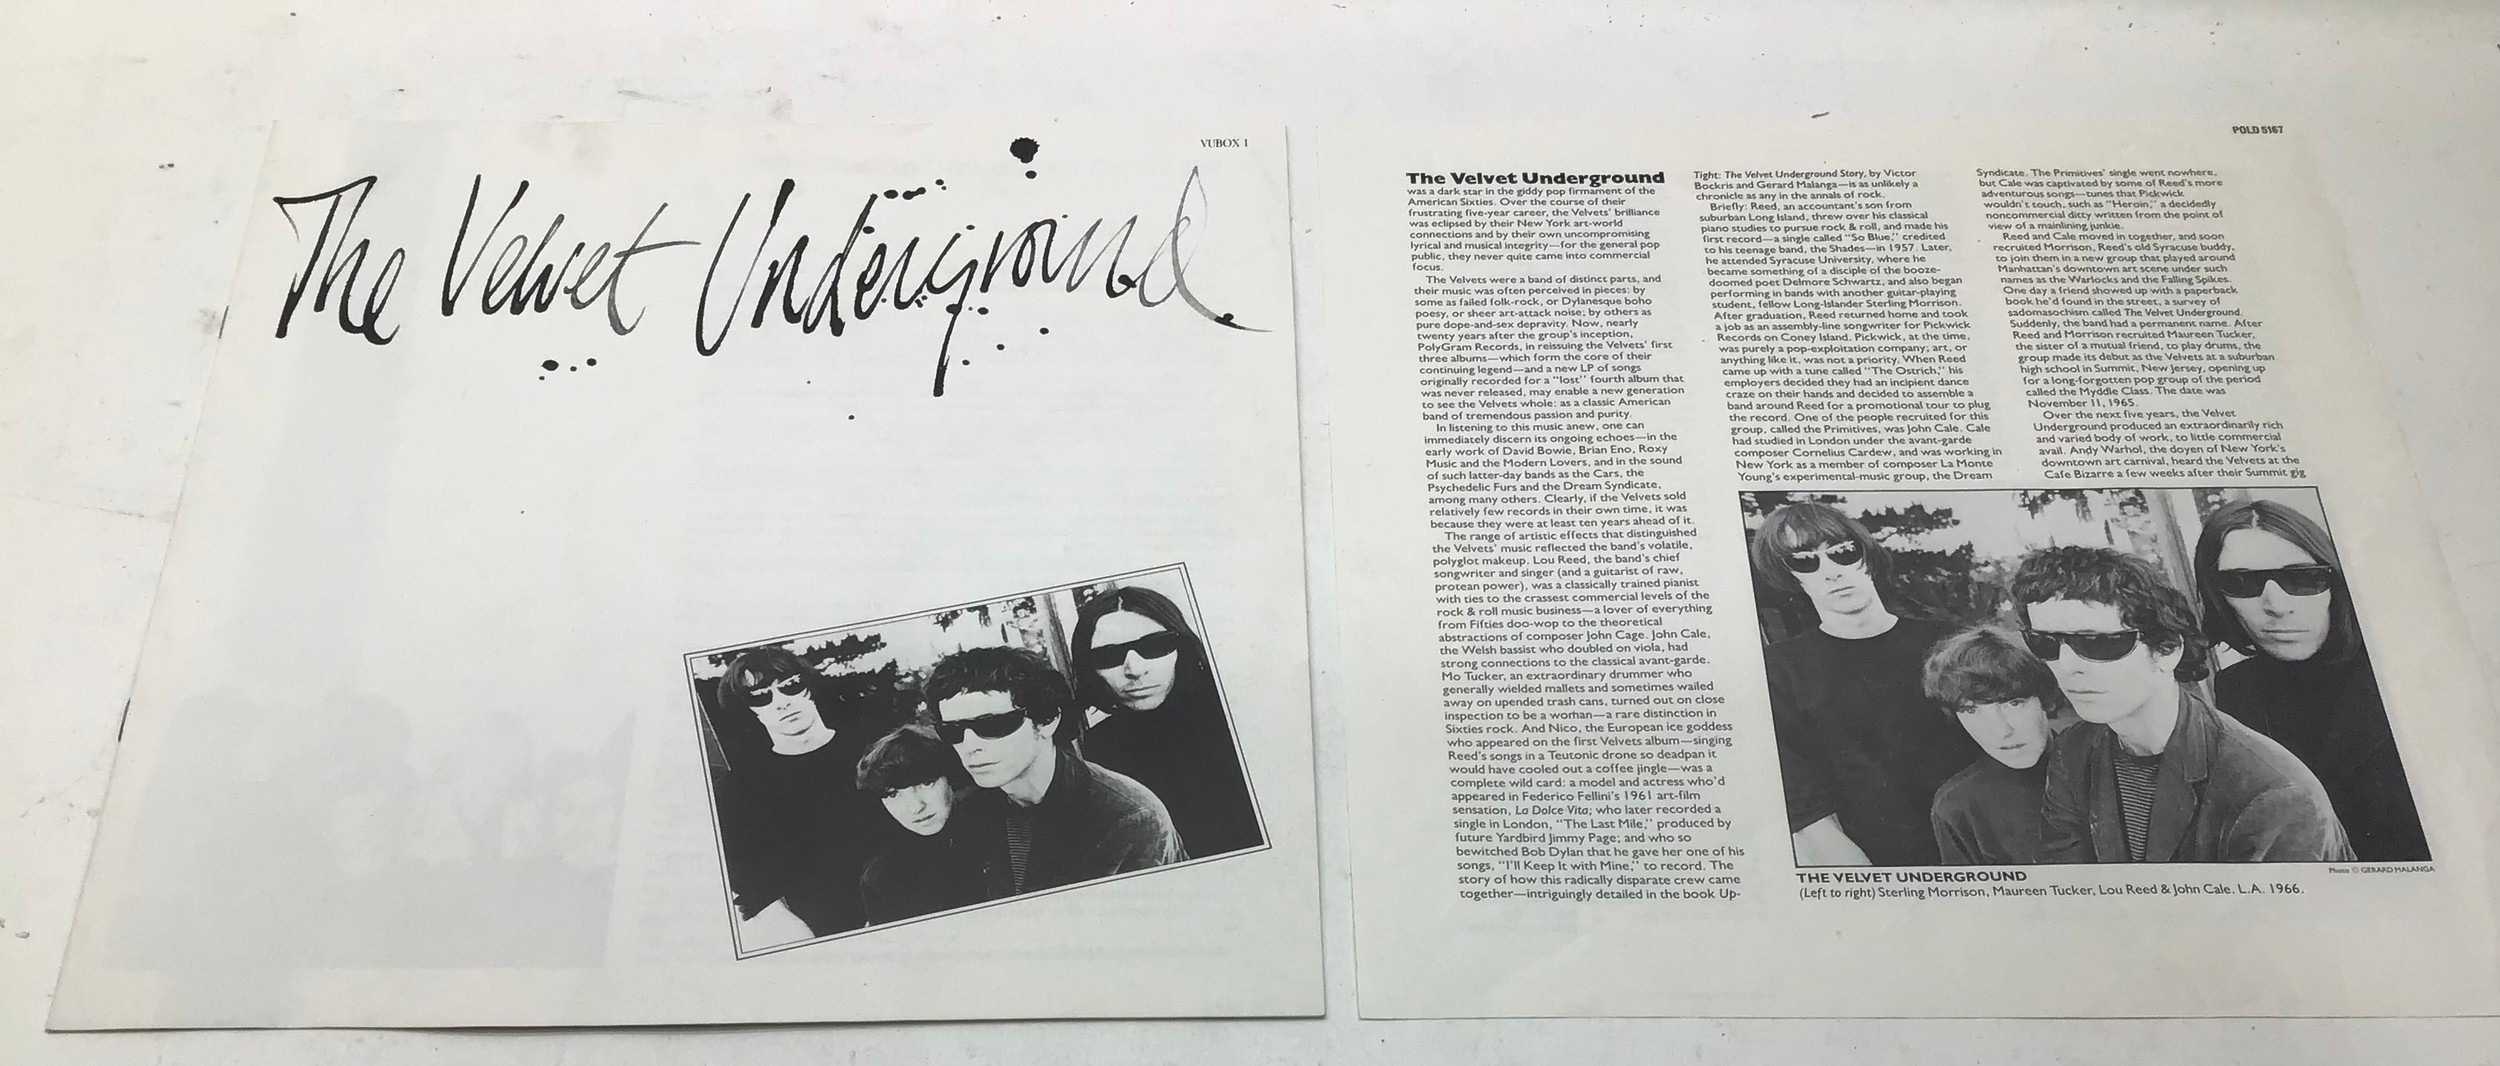 The Velvet Underground Vinyl 5 LP Box Set from 1986 complete with booklet and info sheet. Found here - Image 5 of 7